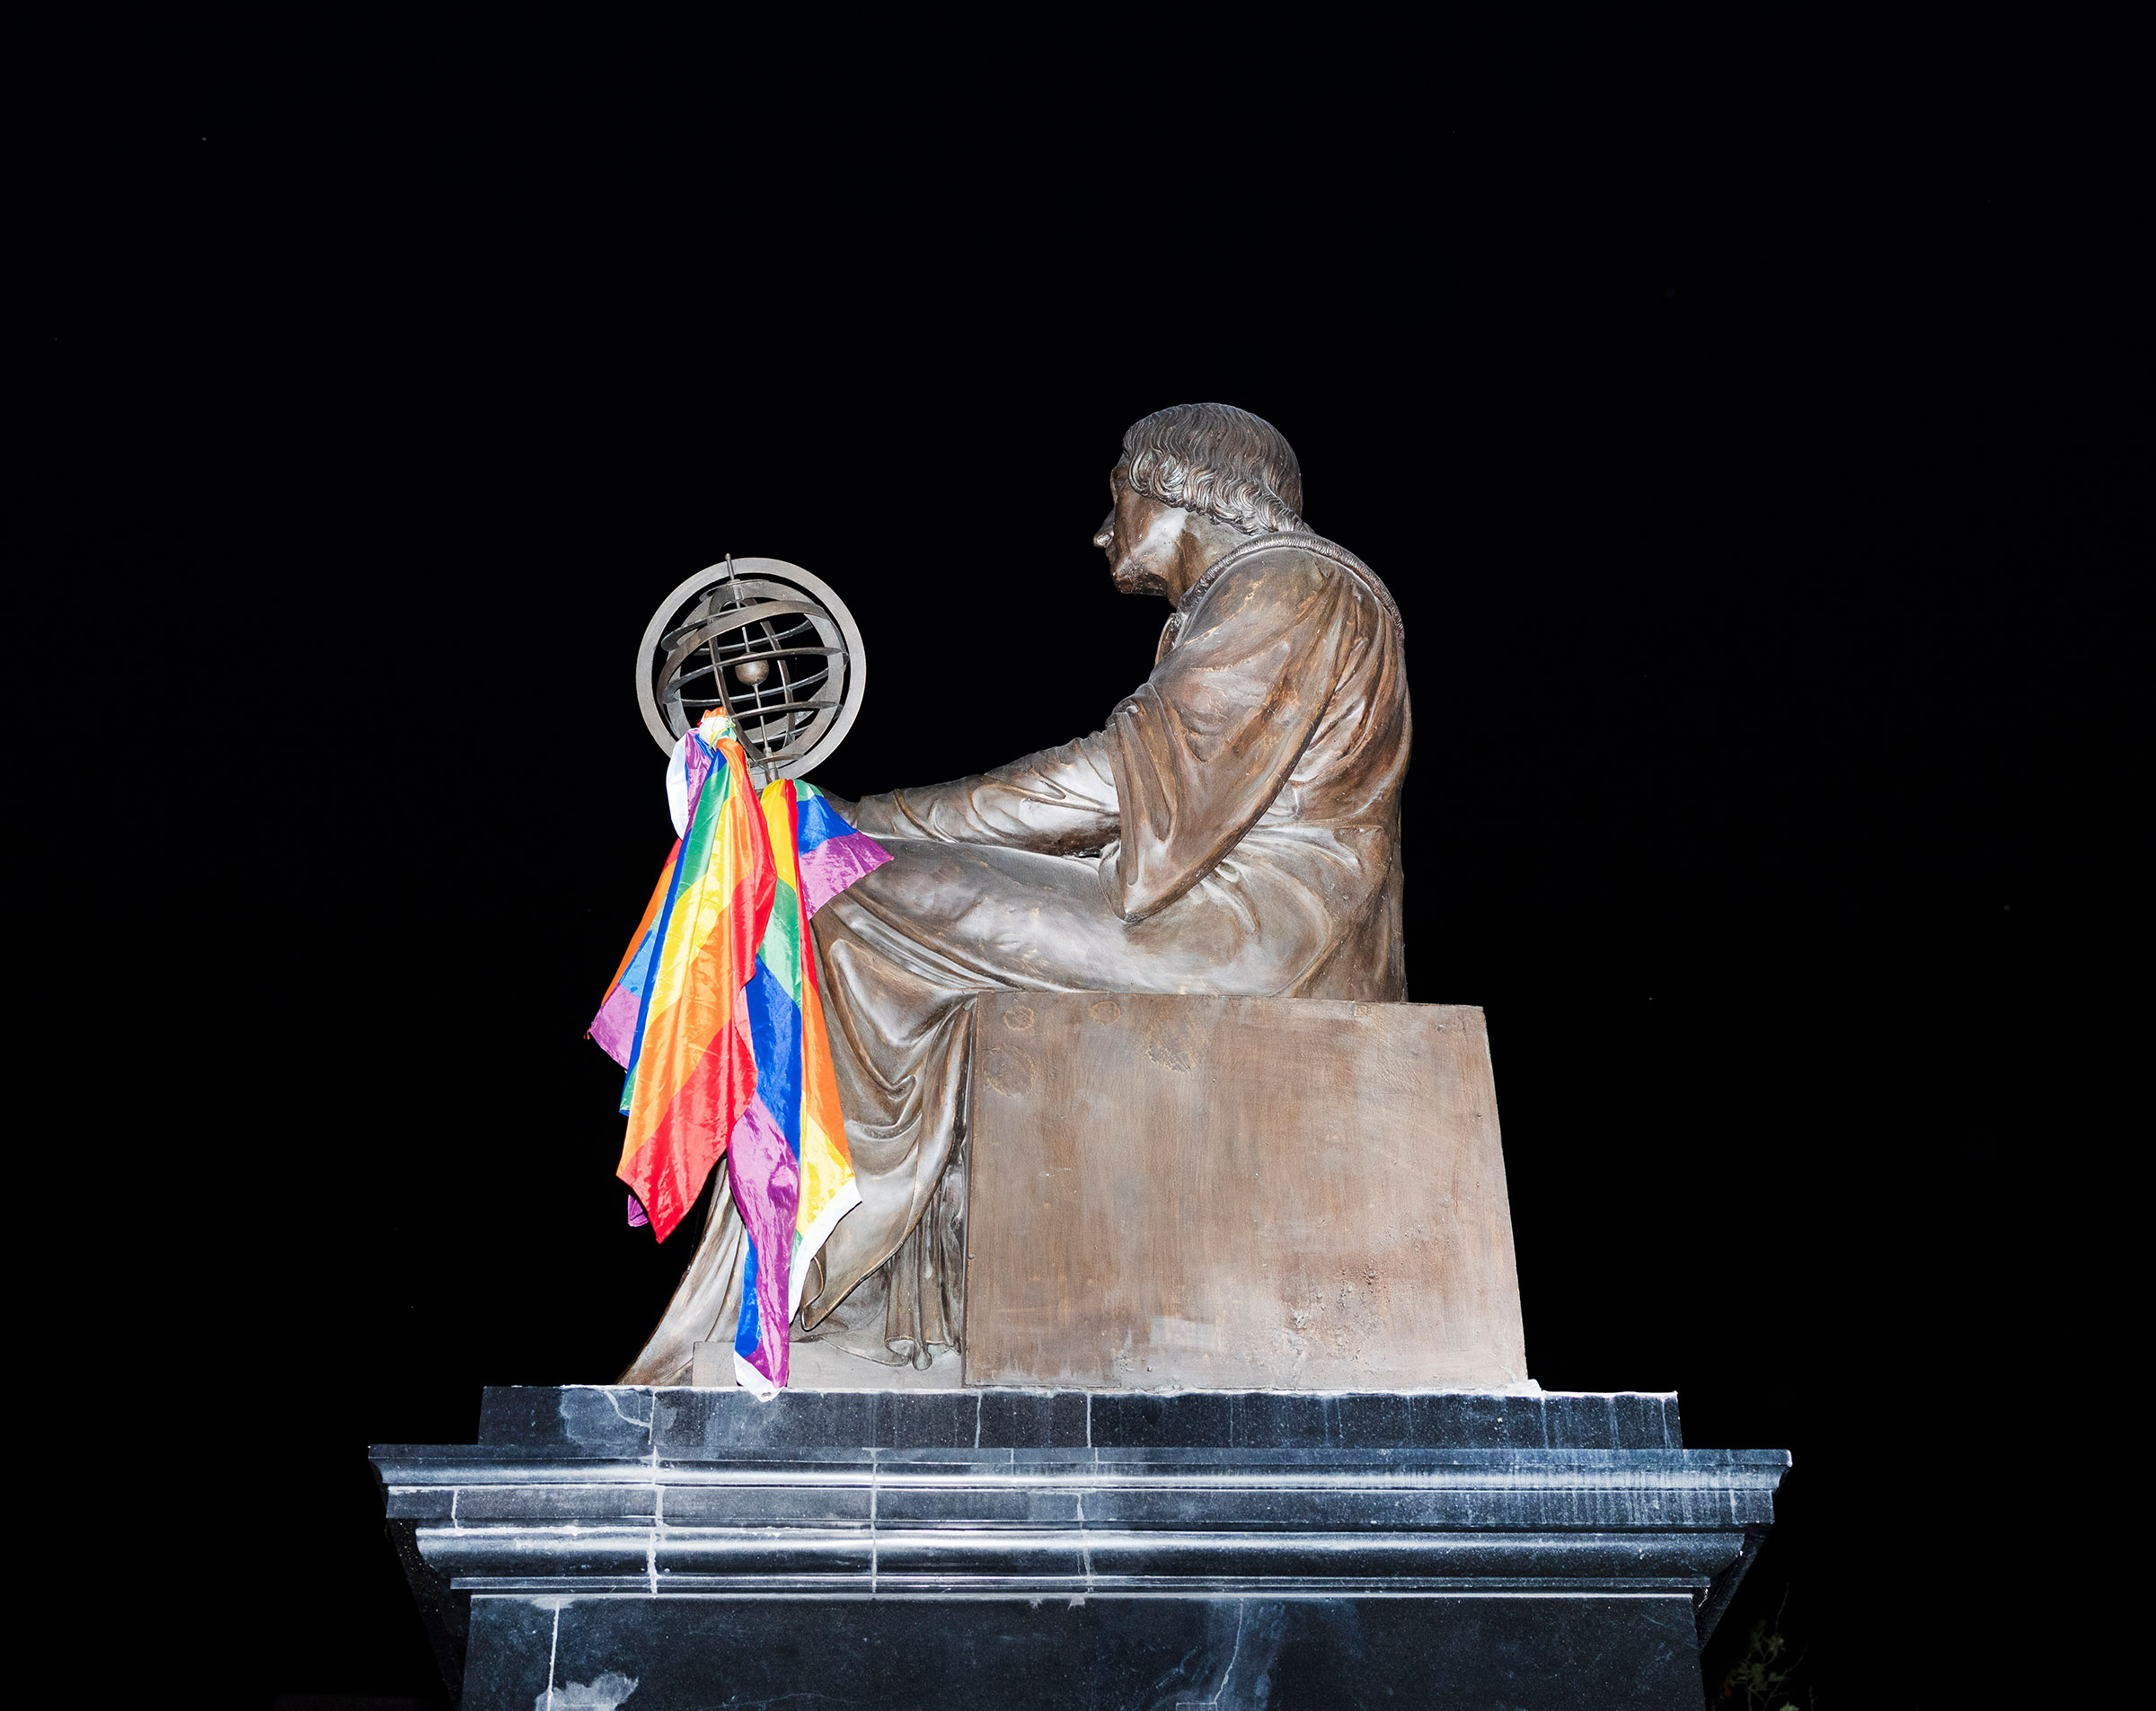 The Nicolaus Copernicus monument is decorated with a rainbow flag.